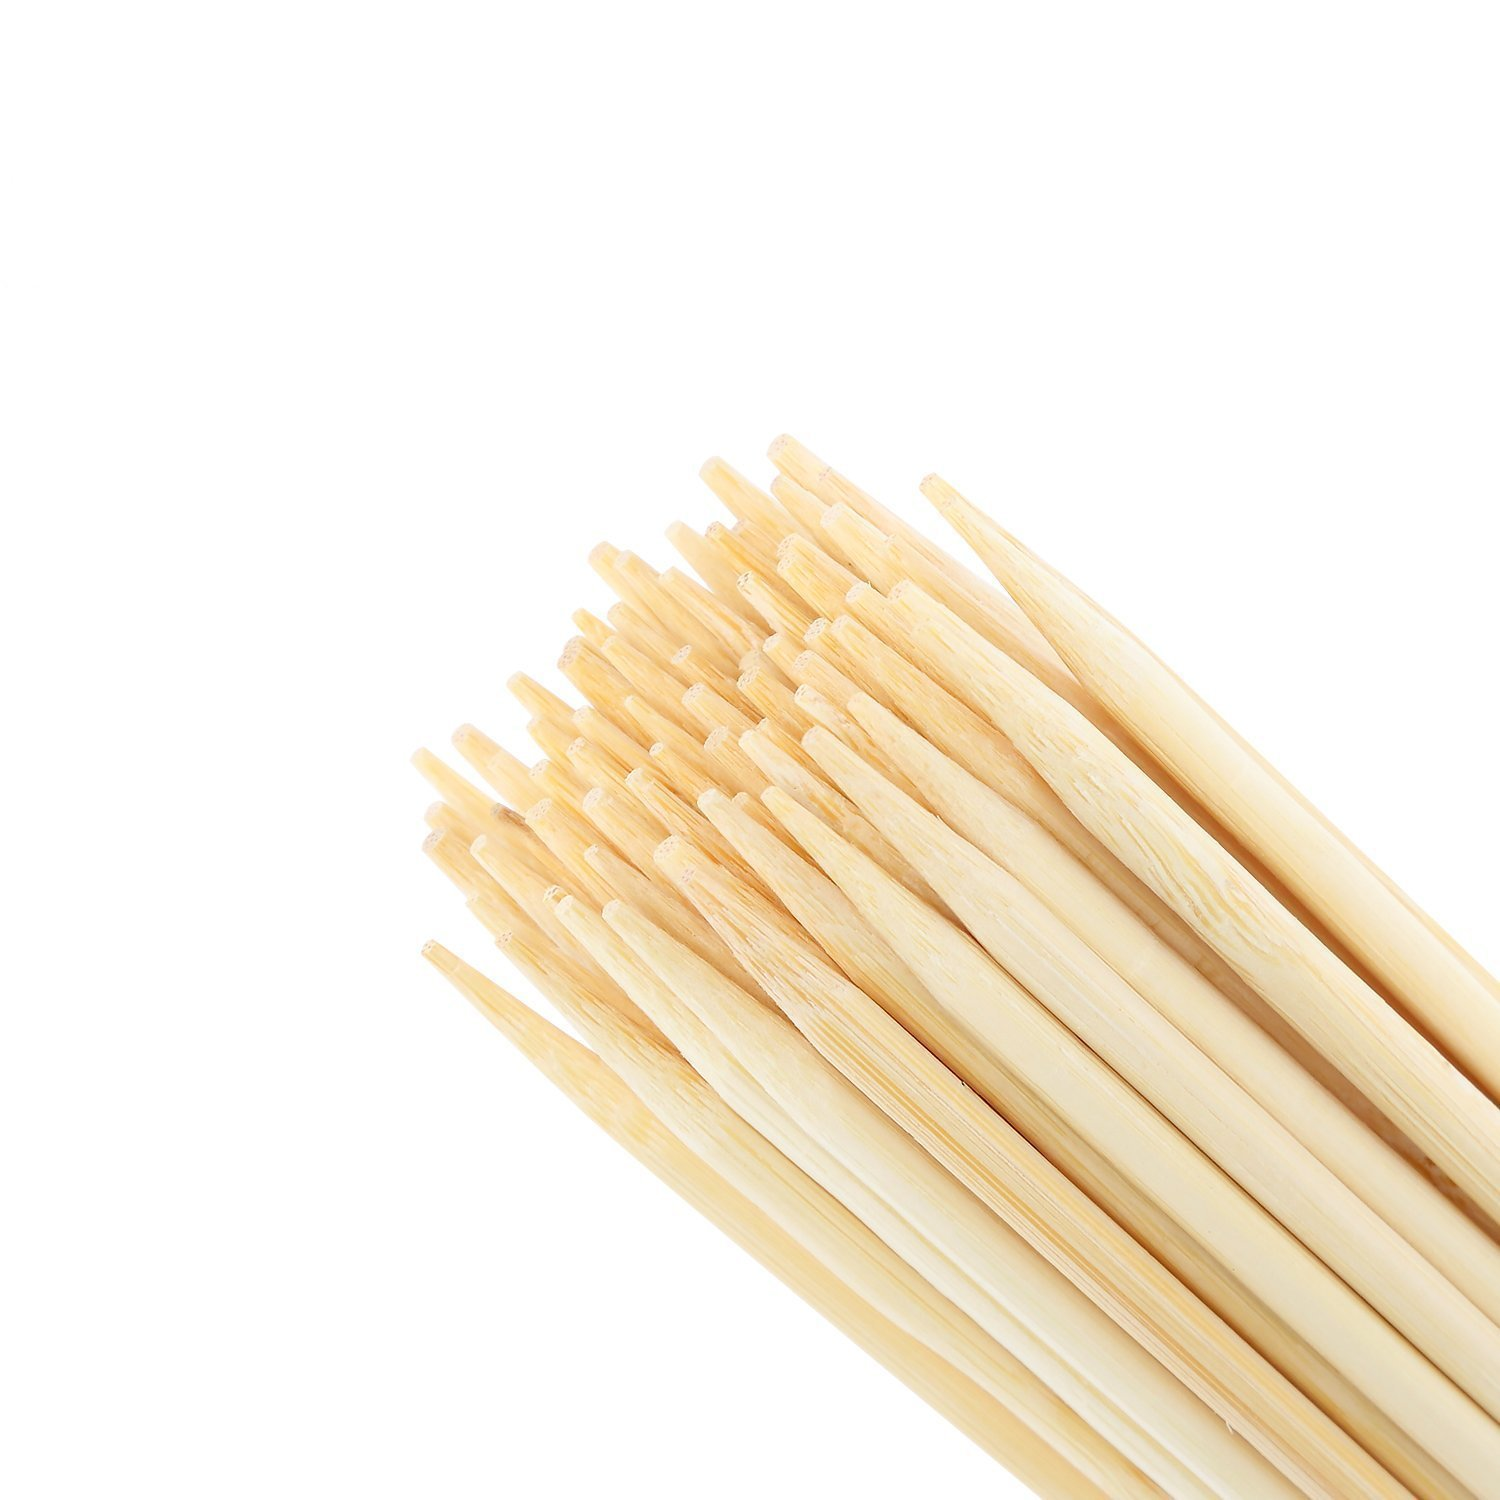 Whole Stix Bamboo Marshmallow Roasting Barbecue Sticks Extra Long Bamboo Skewers Perfect for Hot Dog Camping Bonfires 100% Biodegradable 150 Pc by Whole Stix